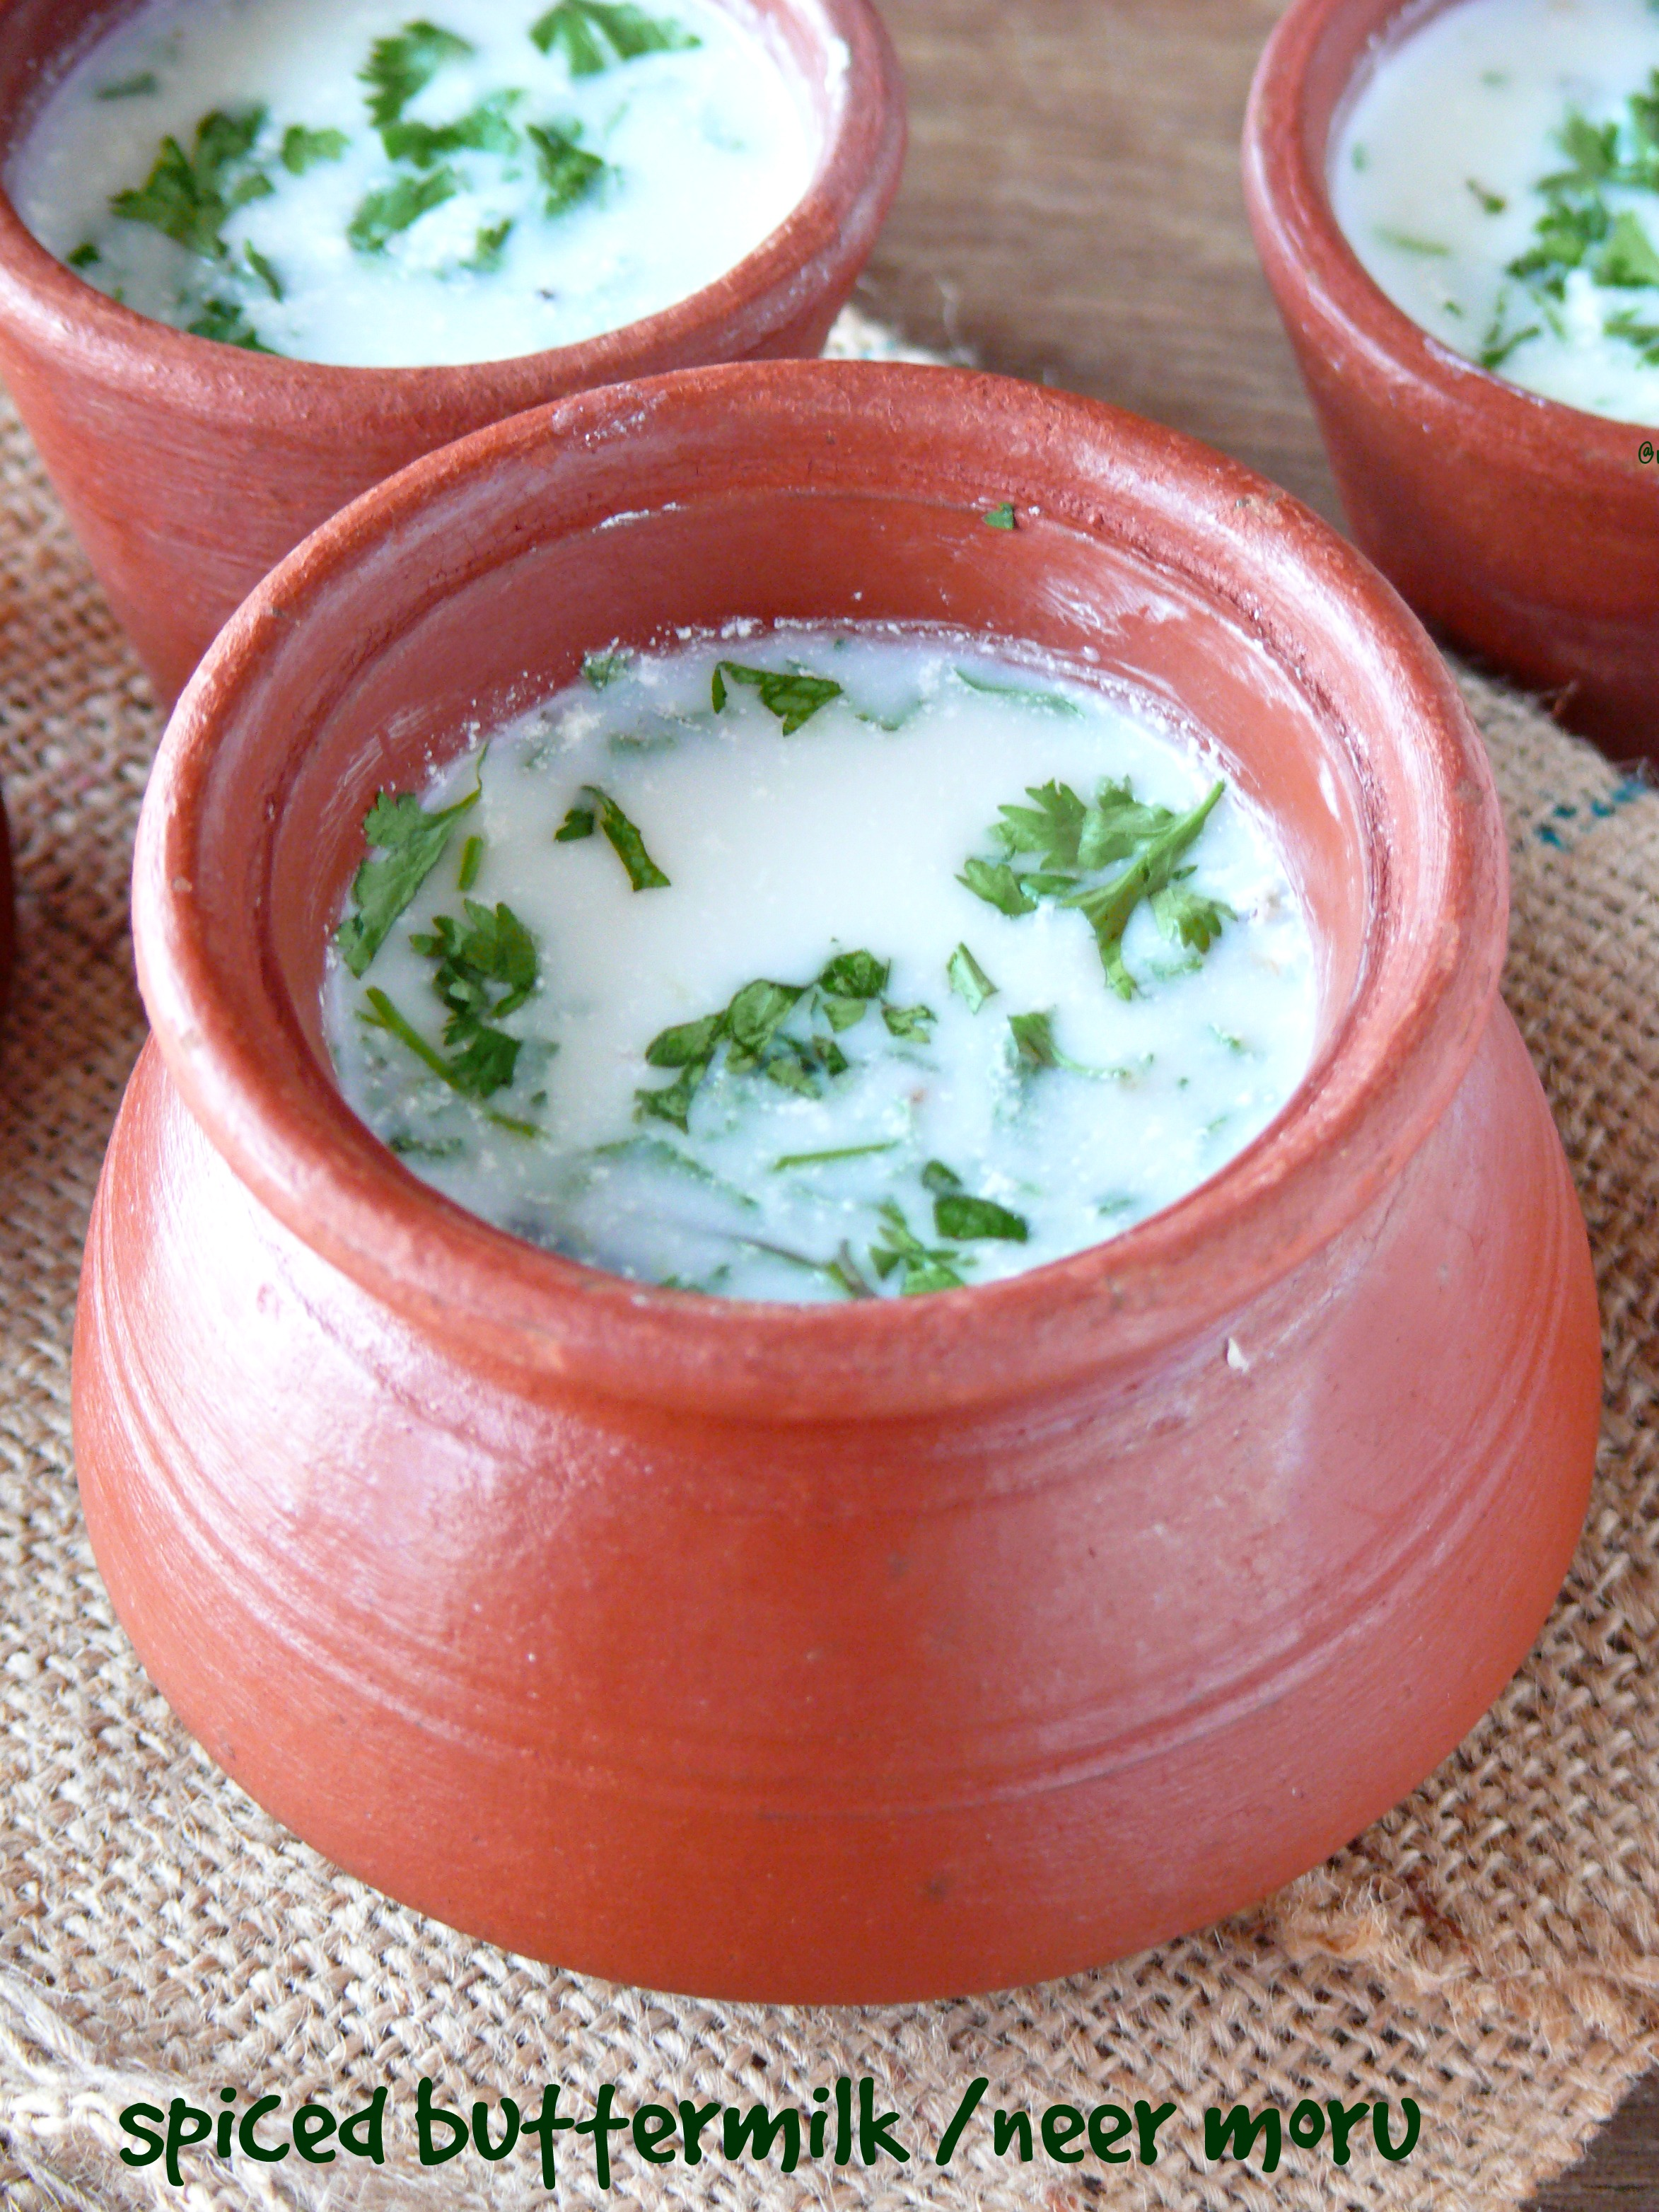 spiced buttermilk recipe/neer moru